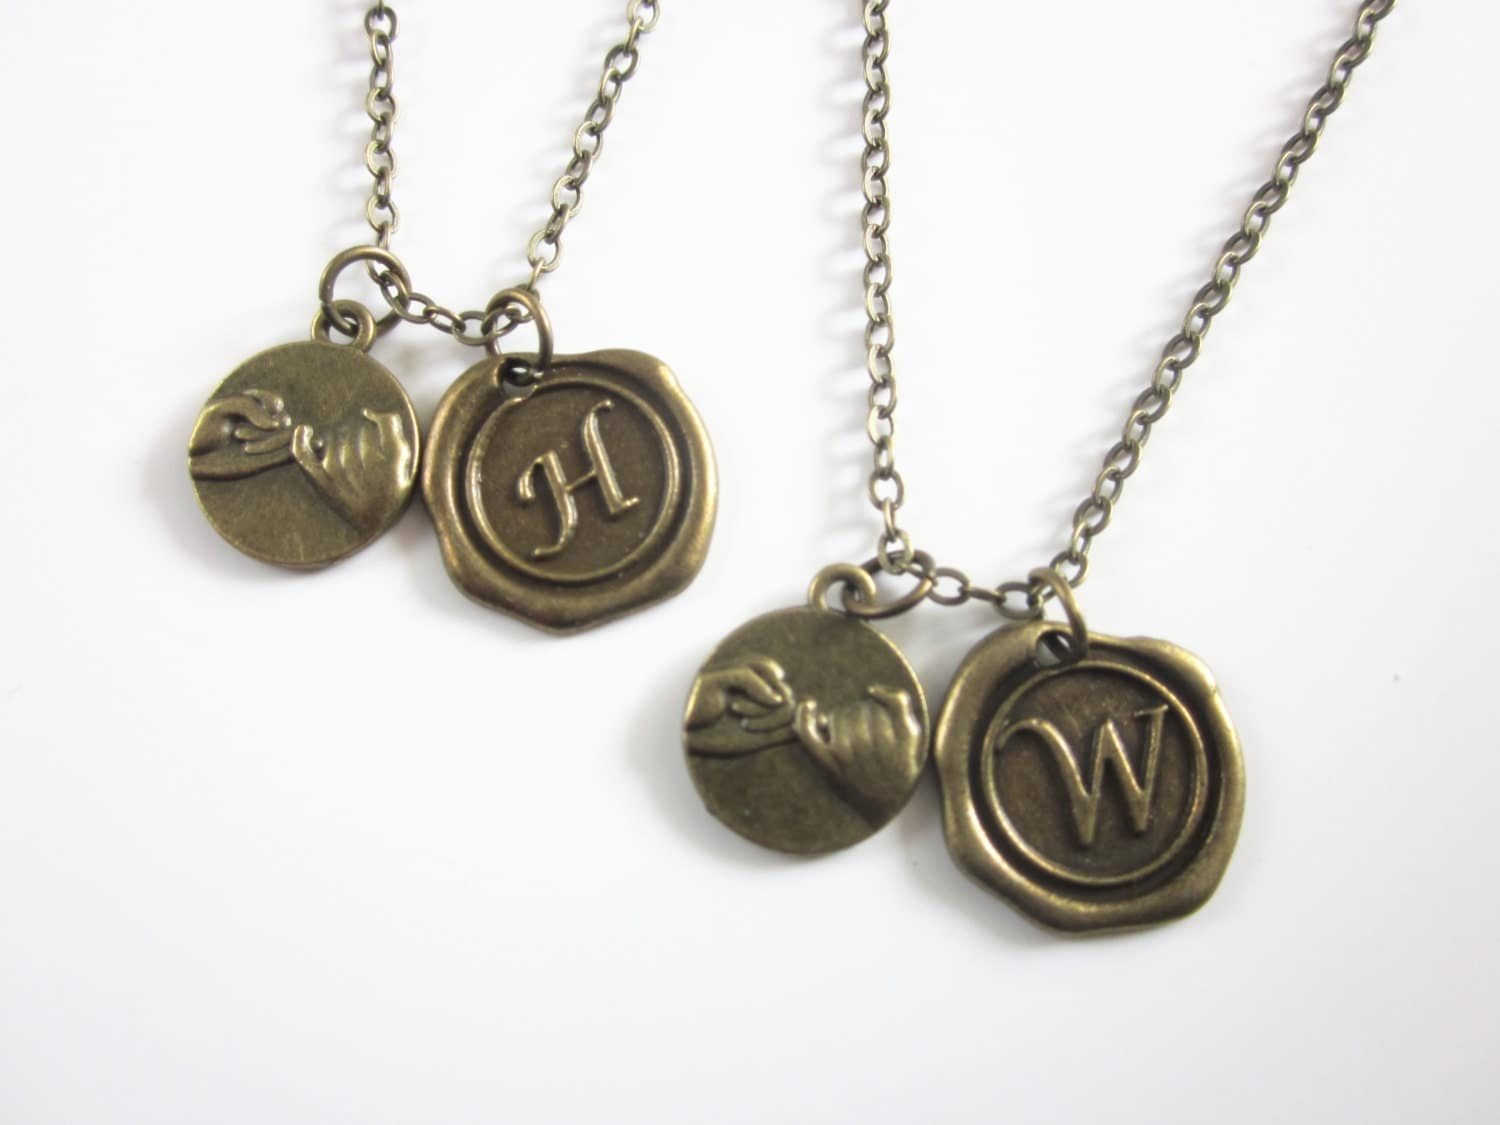 2 pinky promise necklaces with Wax Seal Initial Pinky Swear